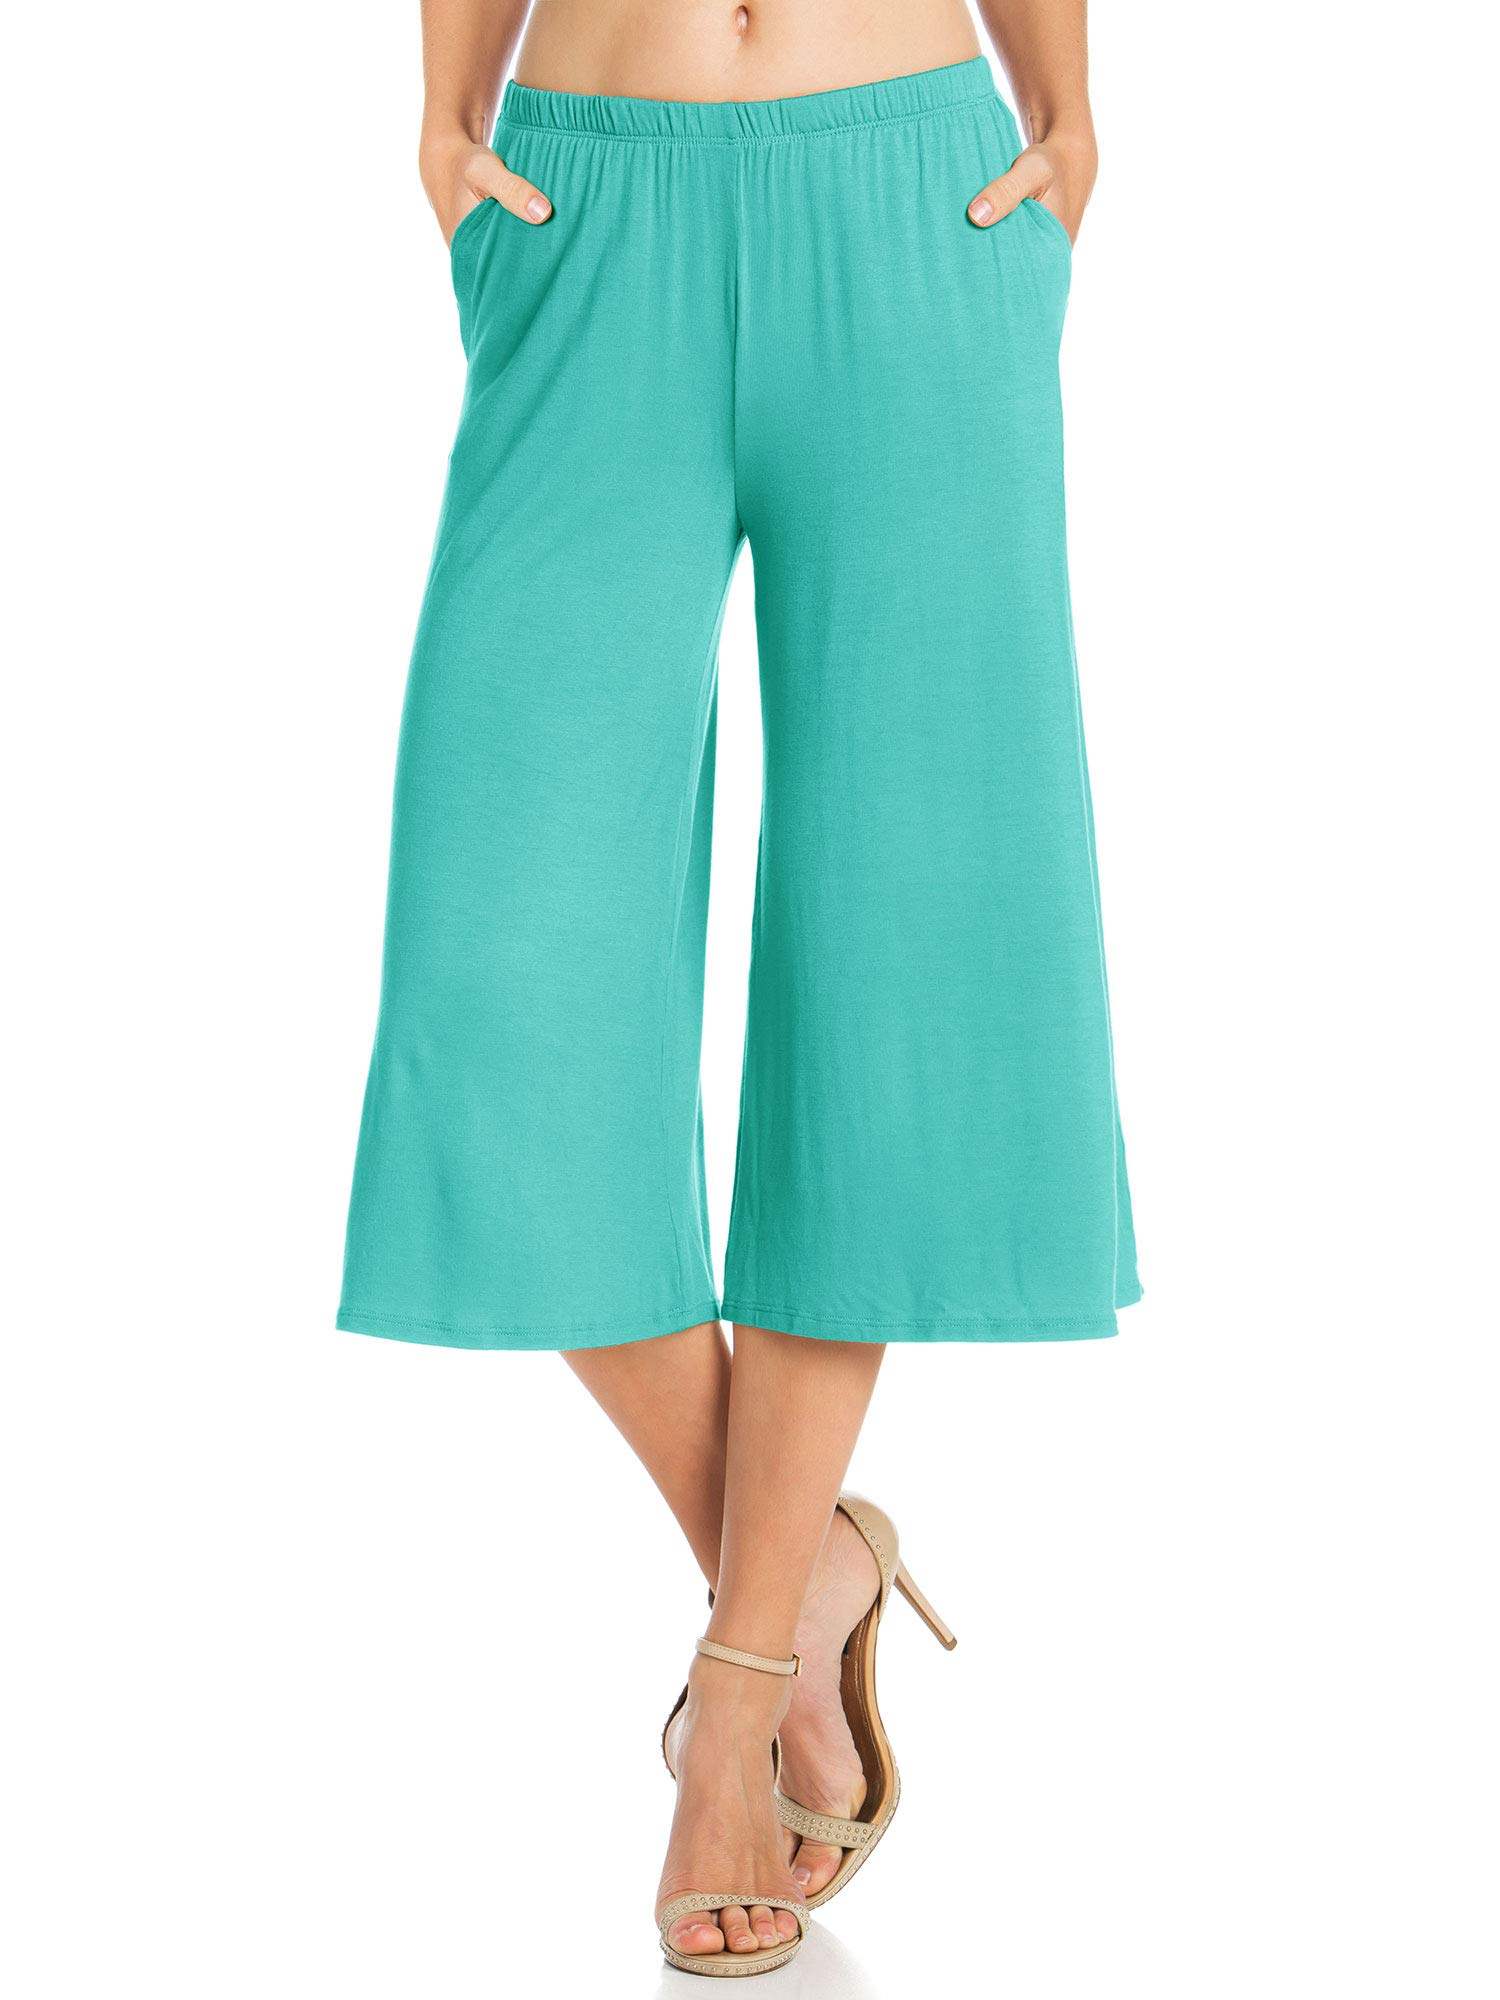 Fashion California Womens 1 Pack Elastic Waist Jersey Culottes Capri Pocket Pants (XXXXX-Large, Aqua)